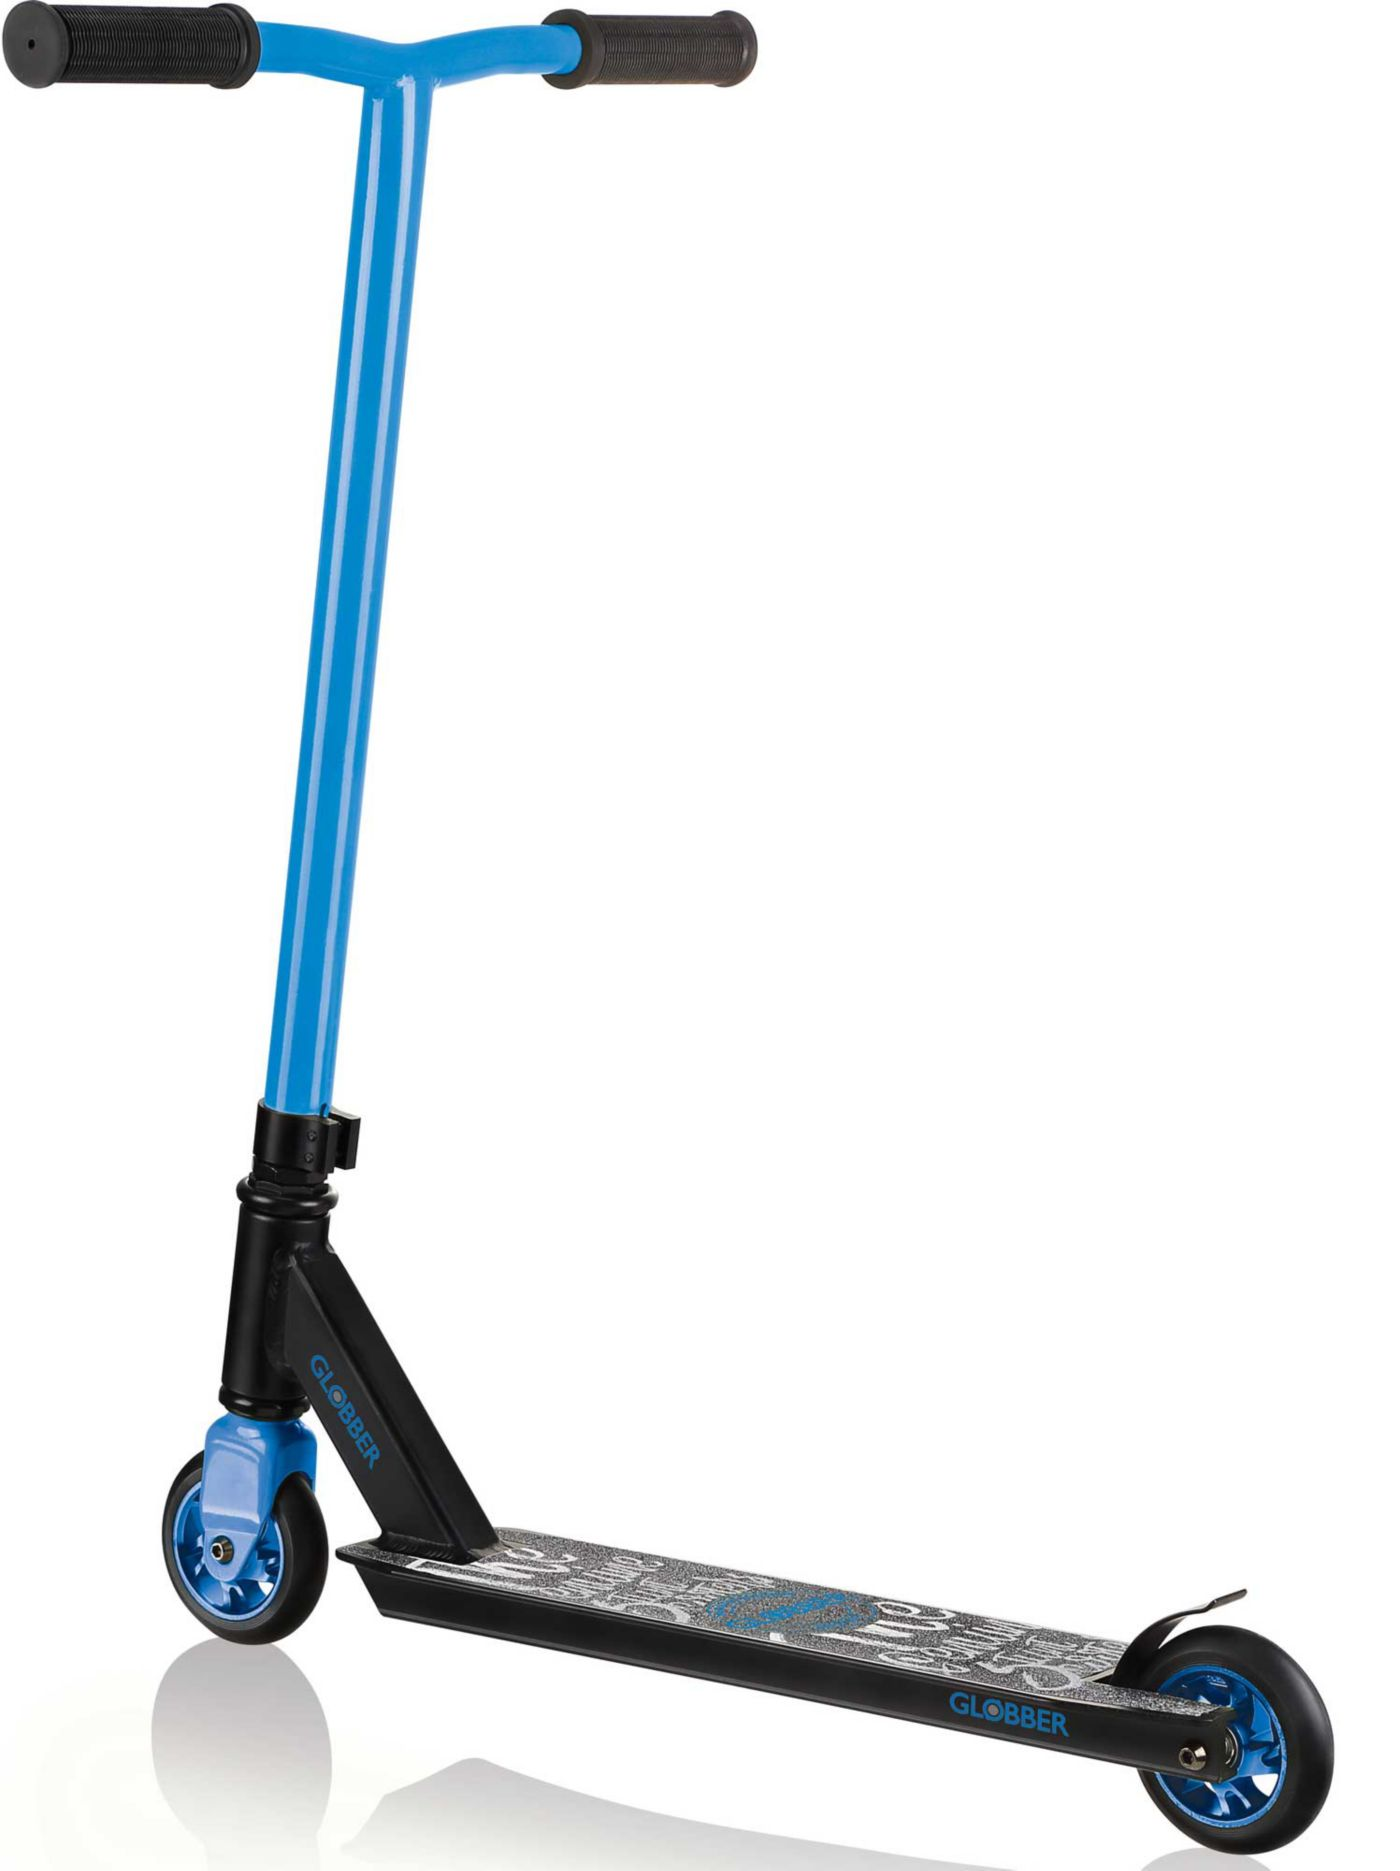 Globber GS 360 Stunt Scooter